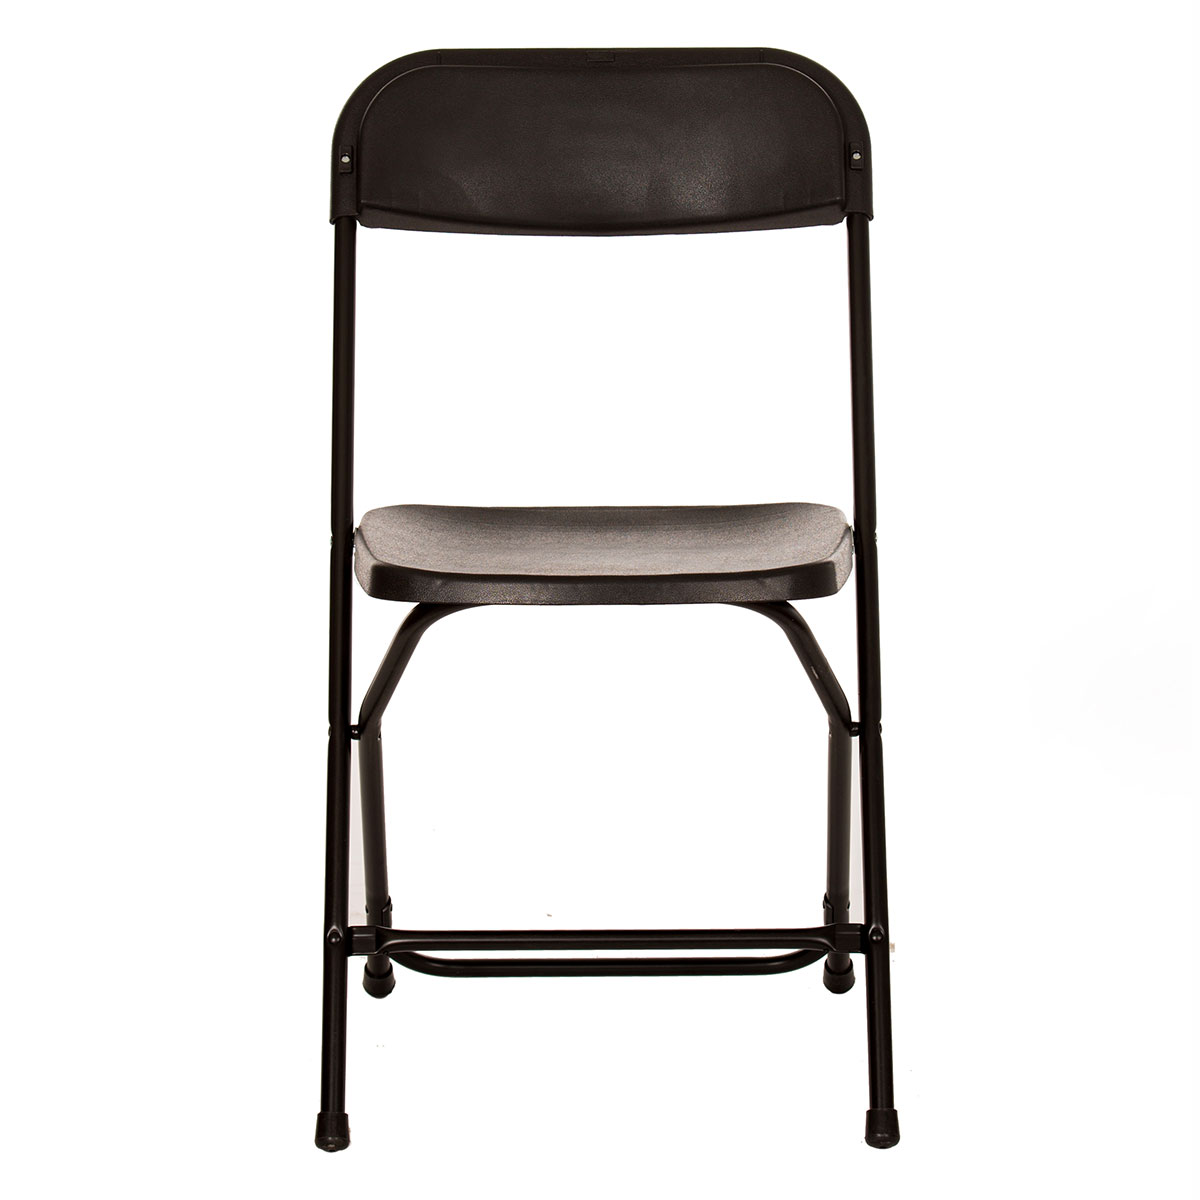 Plastic folding chair - Front